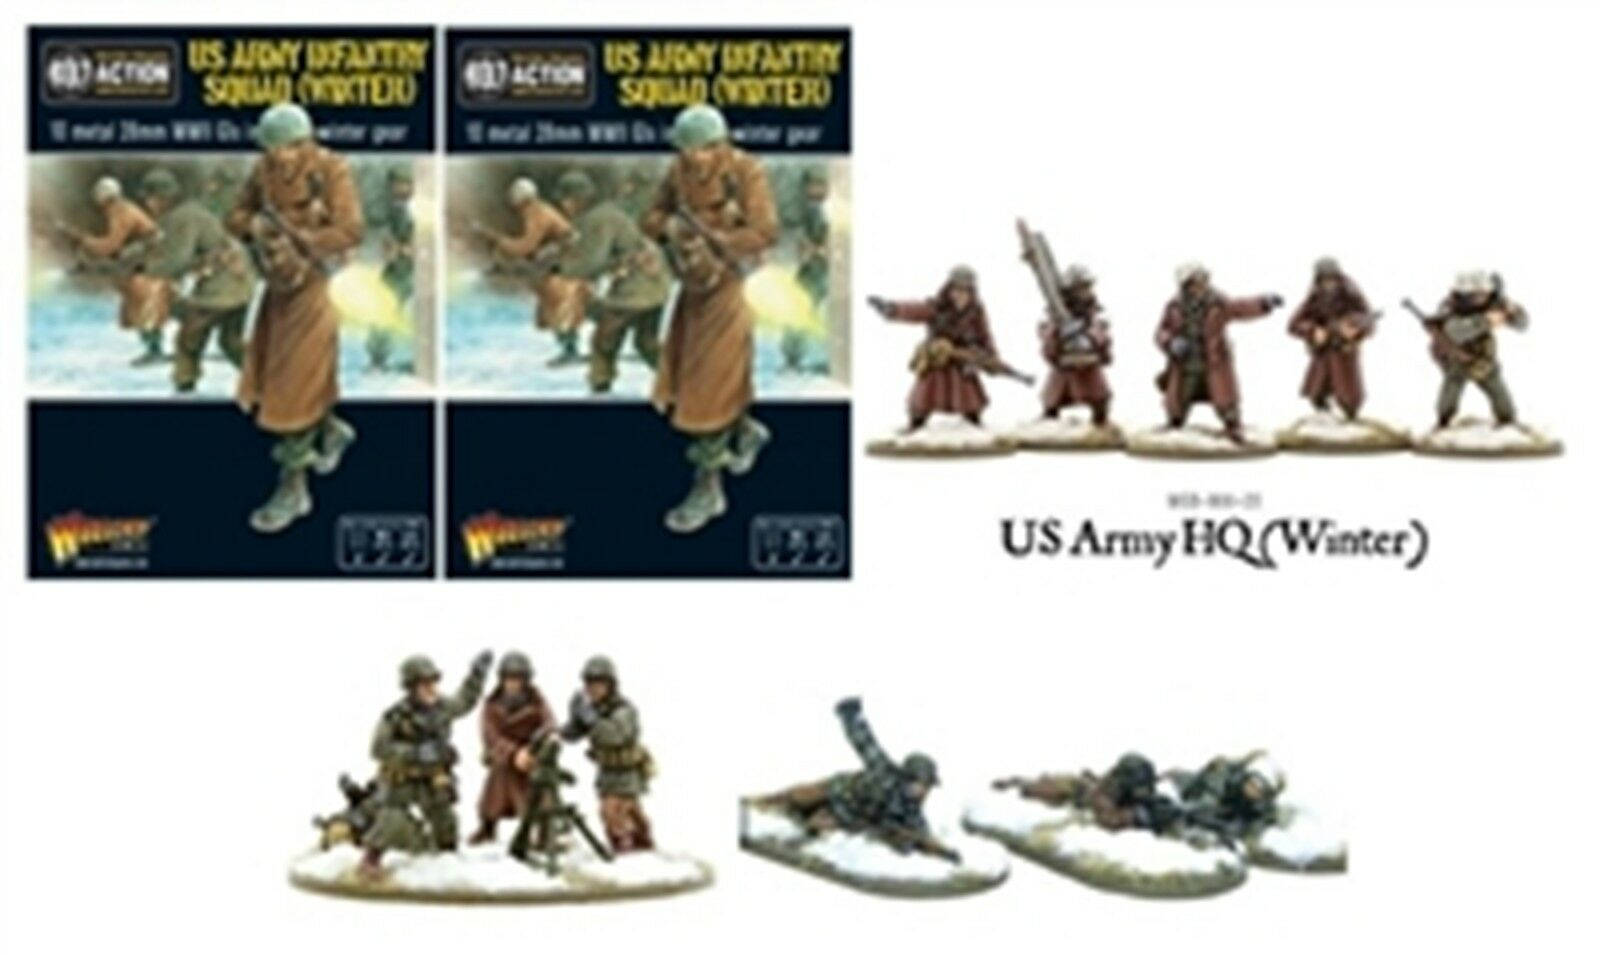 NEW BOLT ACTION MINIATURE US ARMY INFANTRY WINTER PLATOON COLLECT COLLECT COLLECT AD-US-WINTER 1c19dc